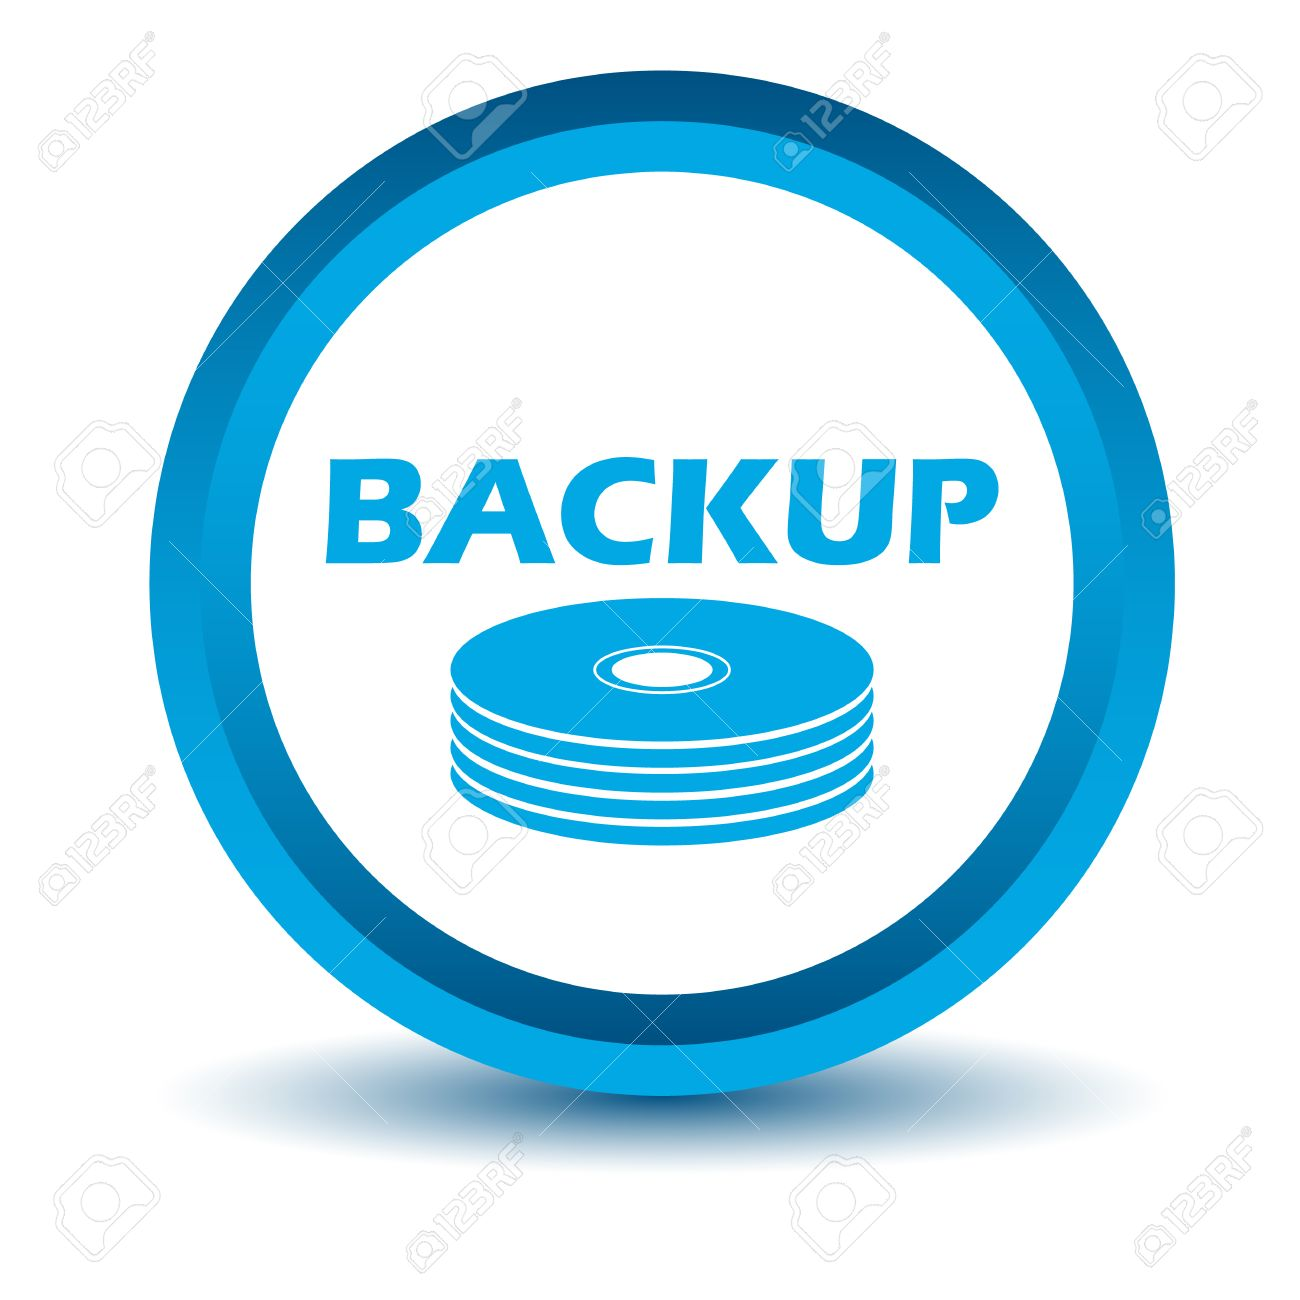 Blue Backup Icon Royalty Free Cliparts, Vectors, And Stock ...